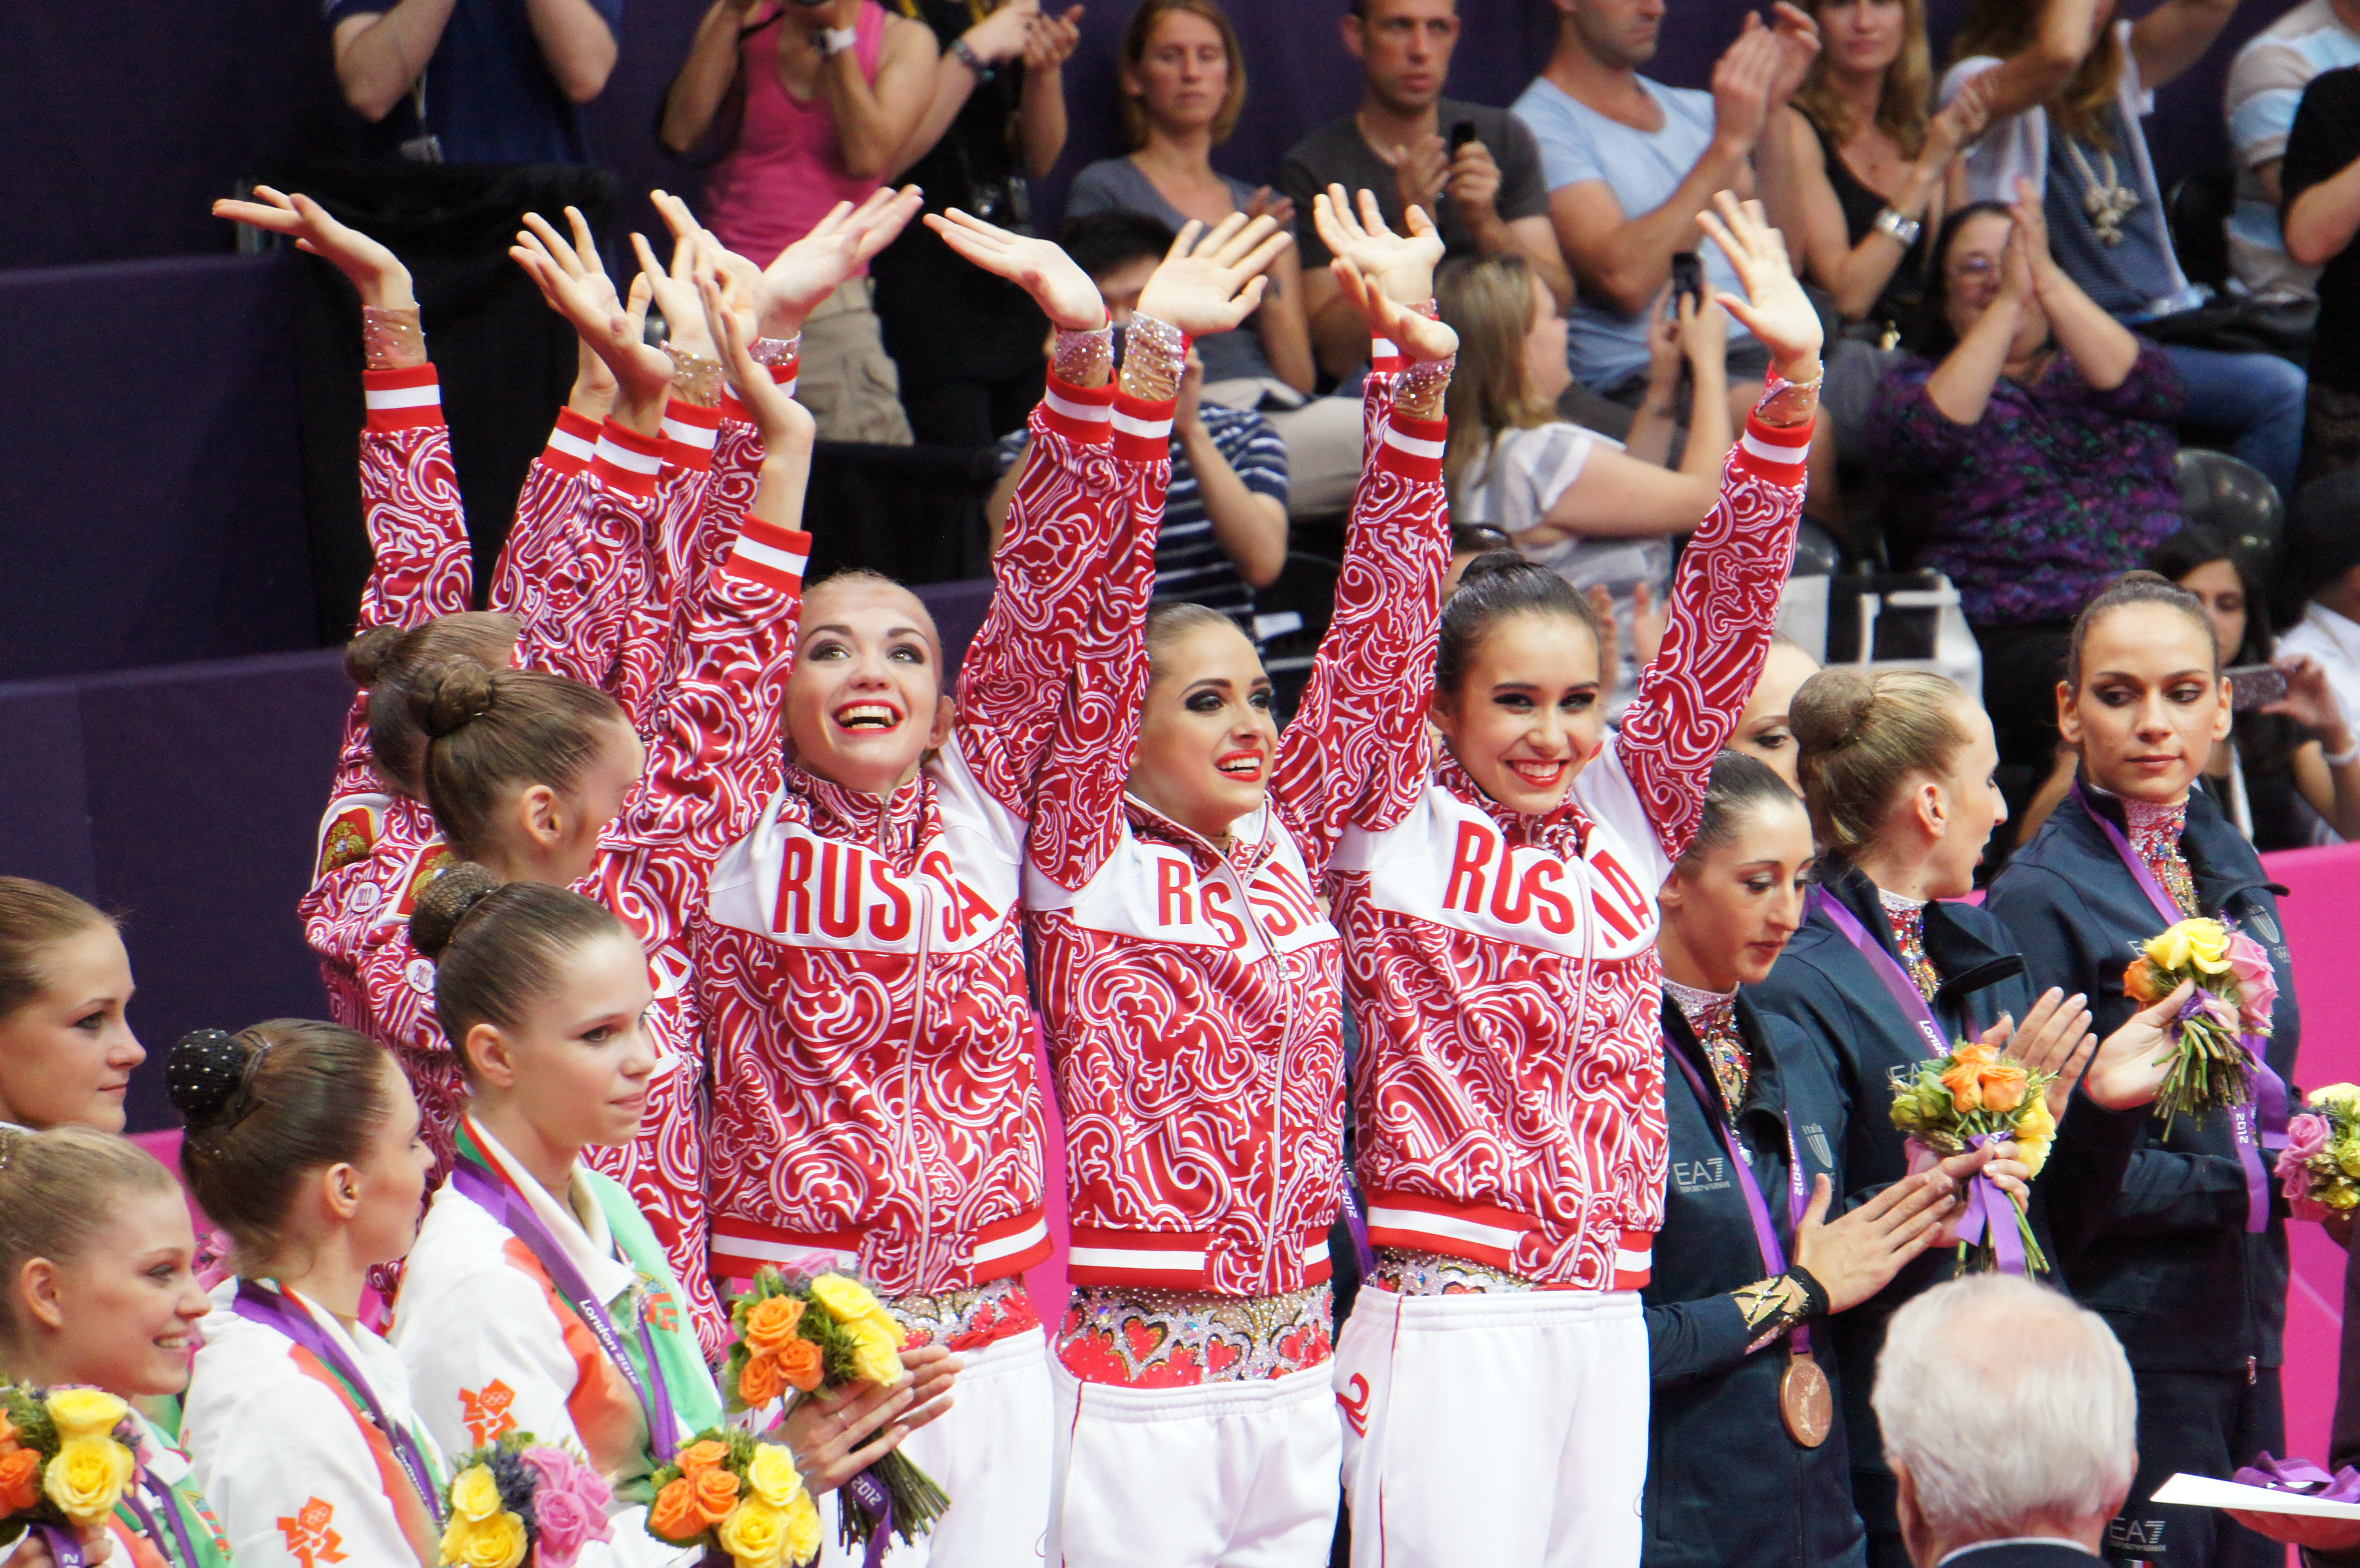 File:London 2012 Rhythmic Gymnastics - Winner Team Russia.jpg ...